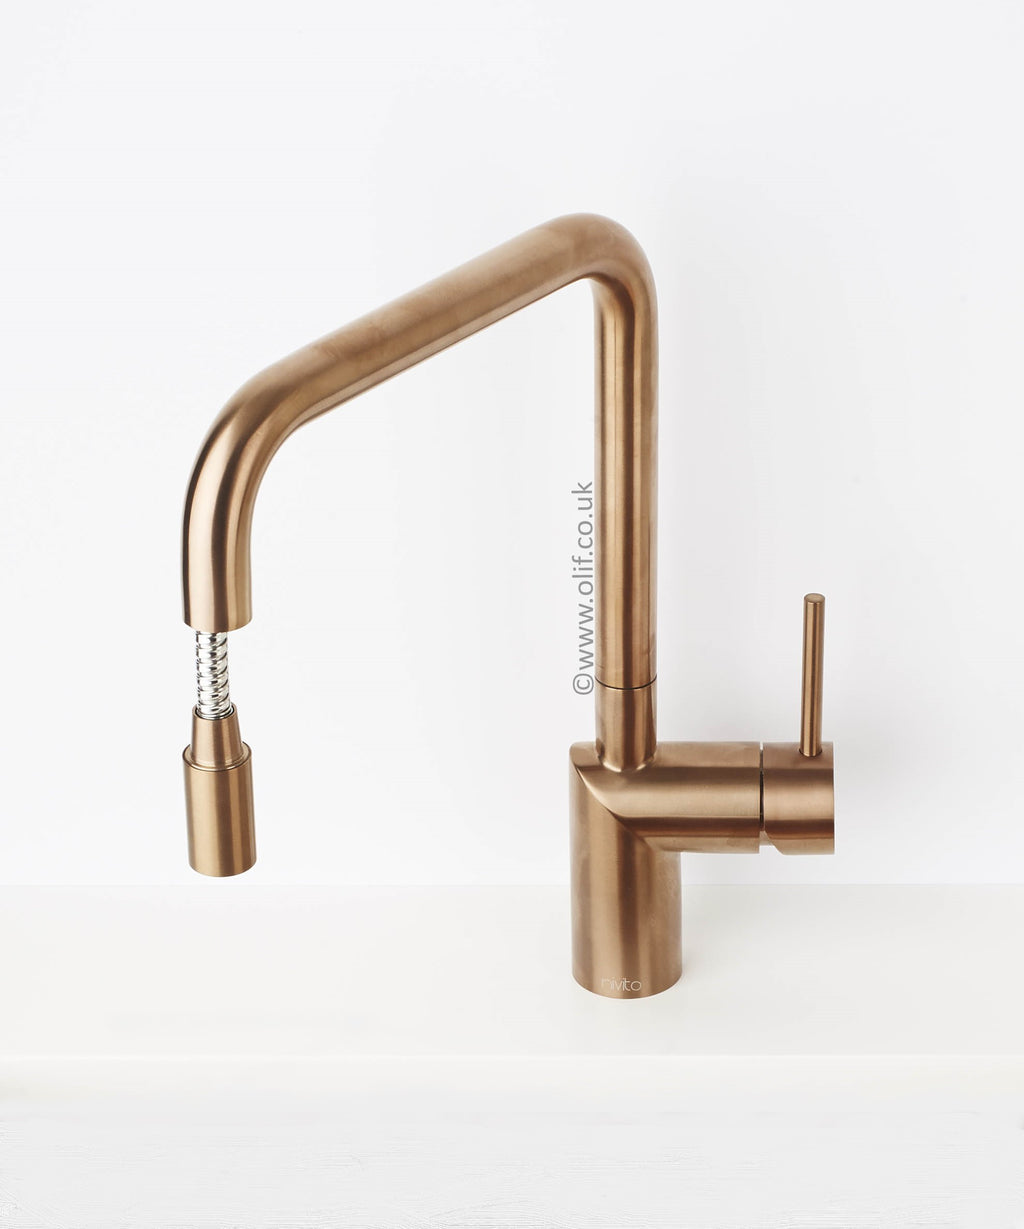 Nivito RH-350-EX Brushed Copper, pull-out kitchen mixer tap